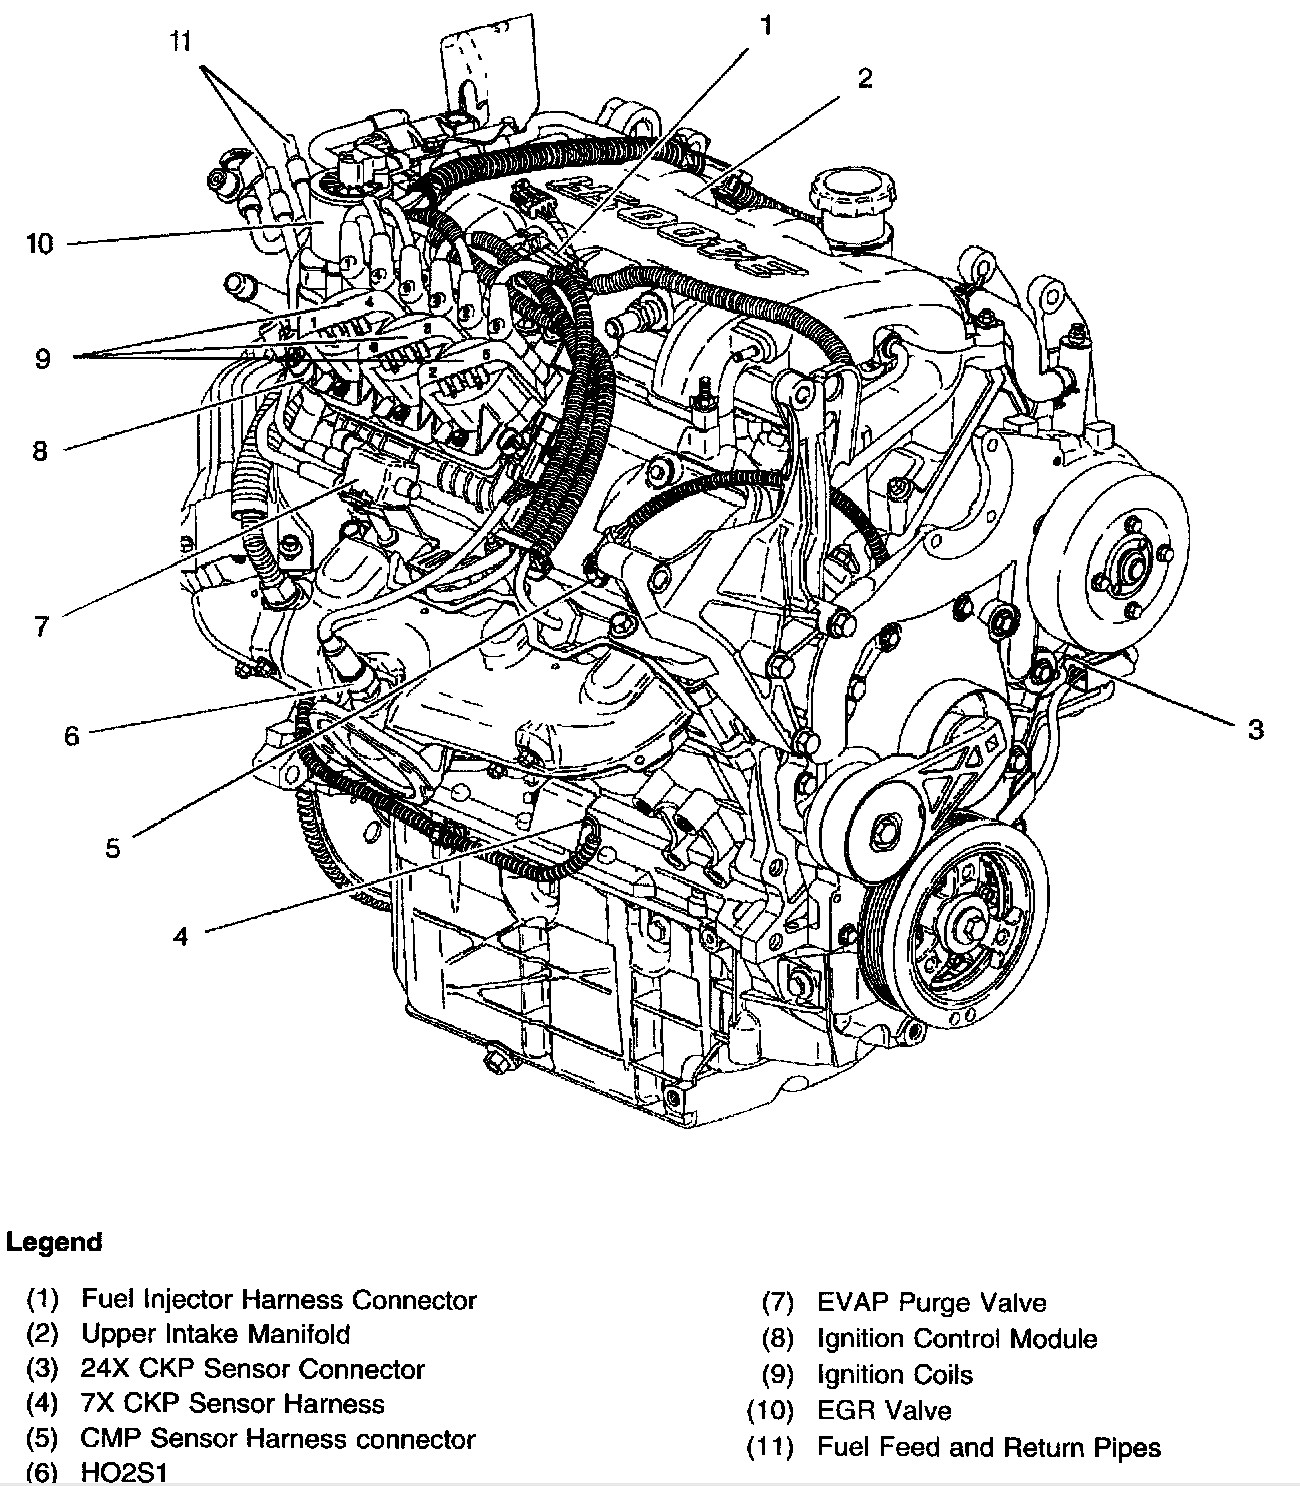 Diagram Of 3800 V6 Engine Wiring And Ebooks Chevy Impala Pontiac Origin Rh 3 10 5 Darklifezine De 38